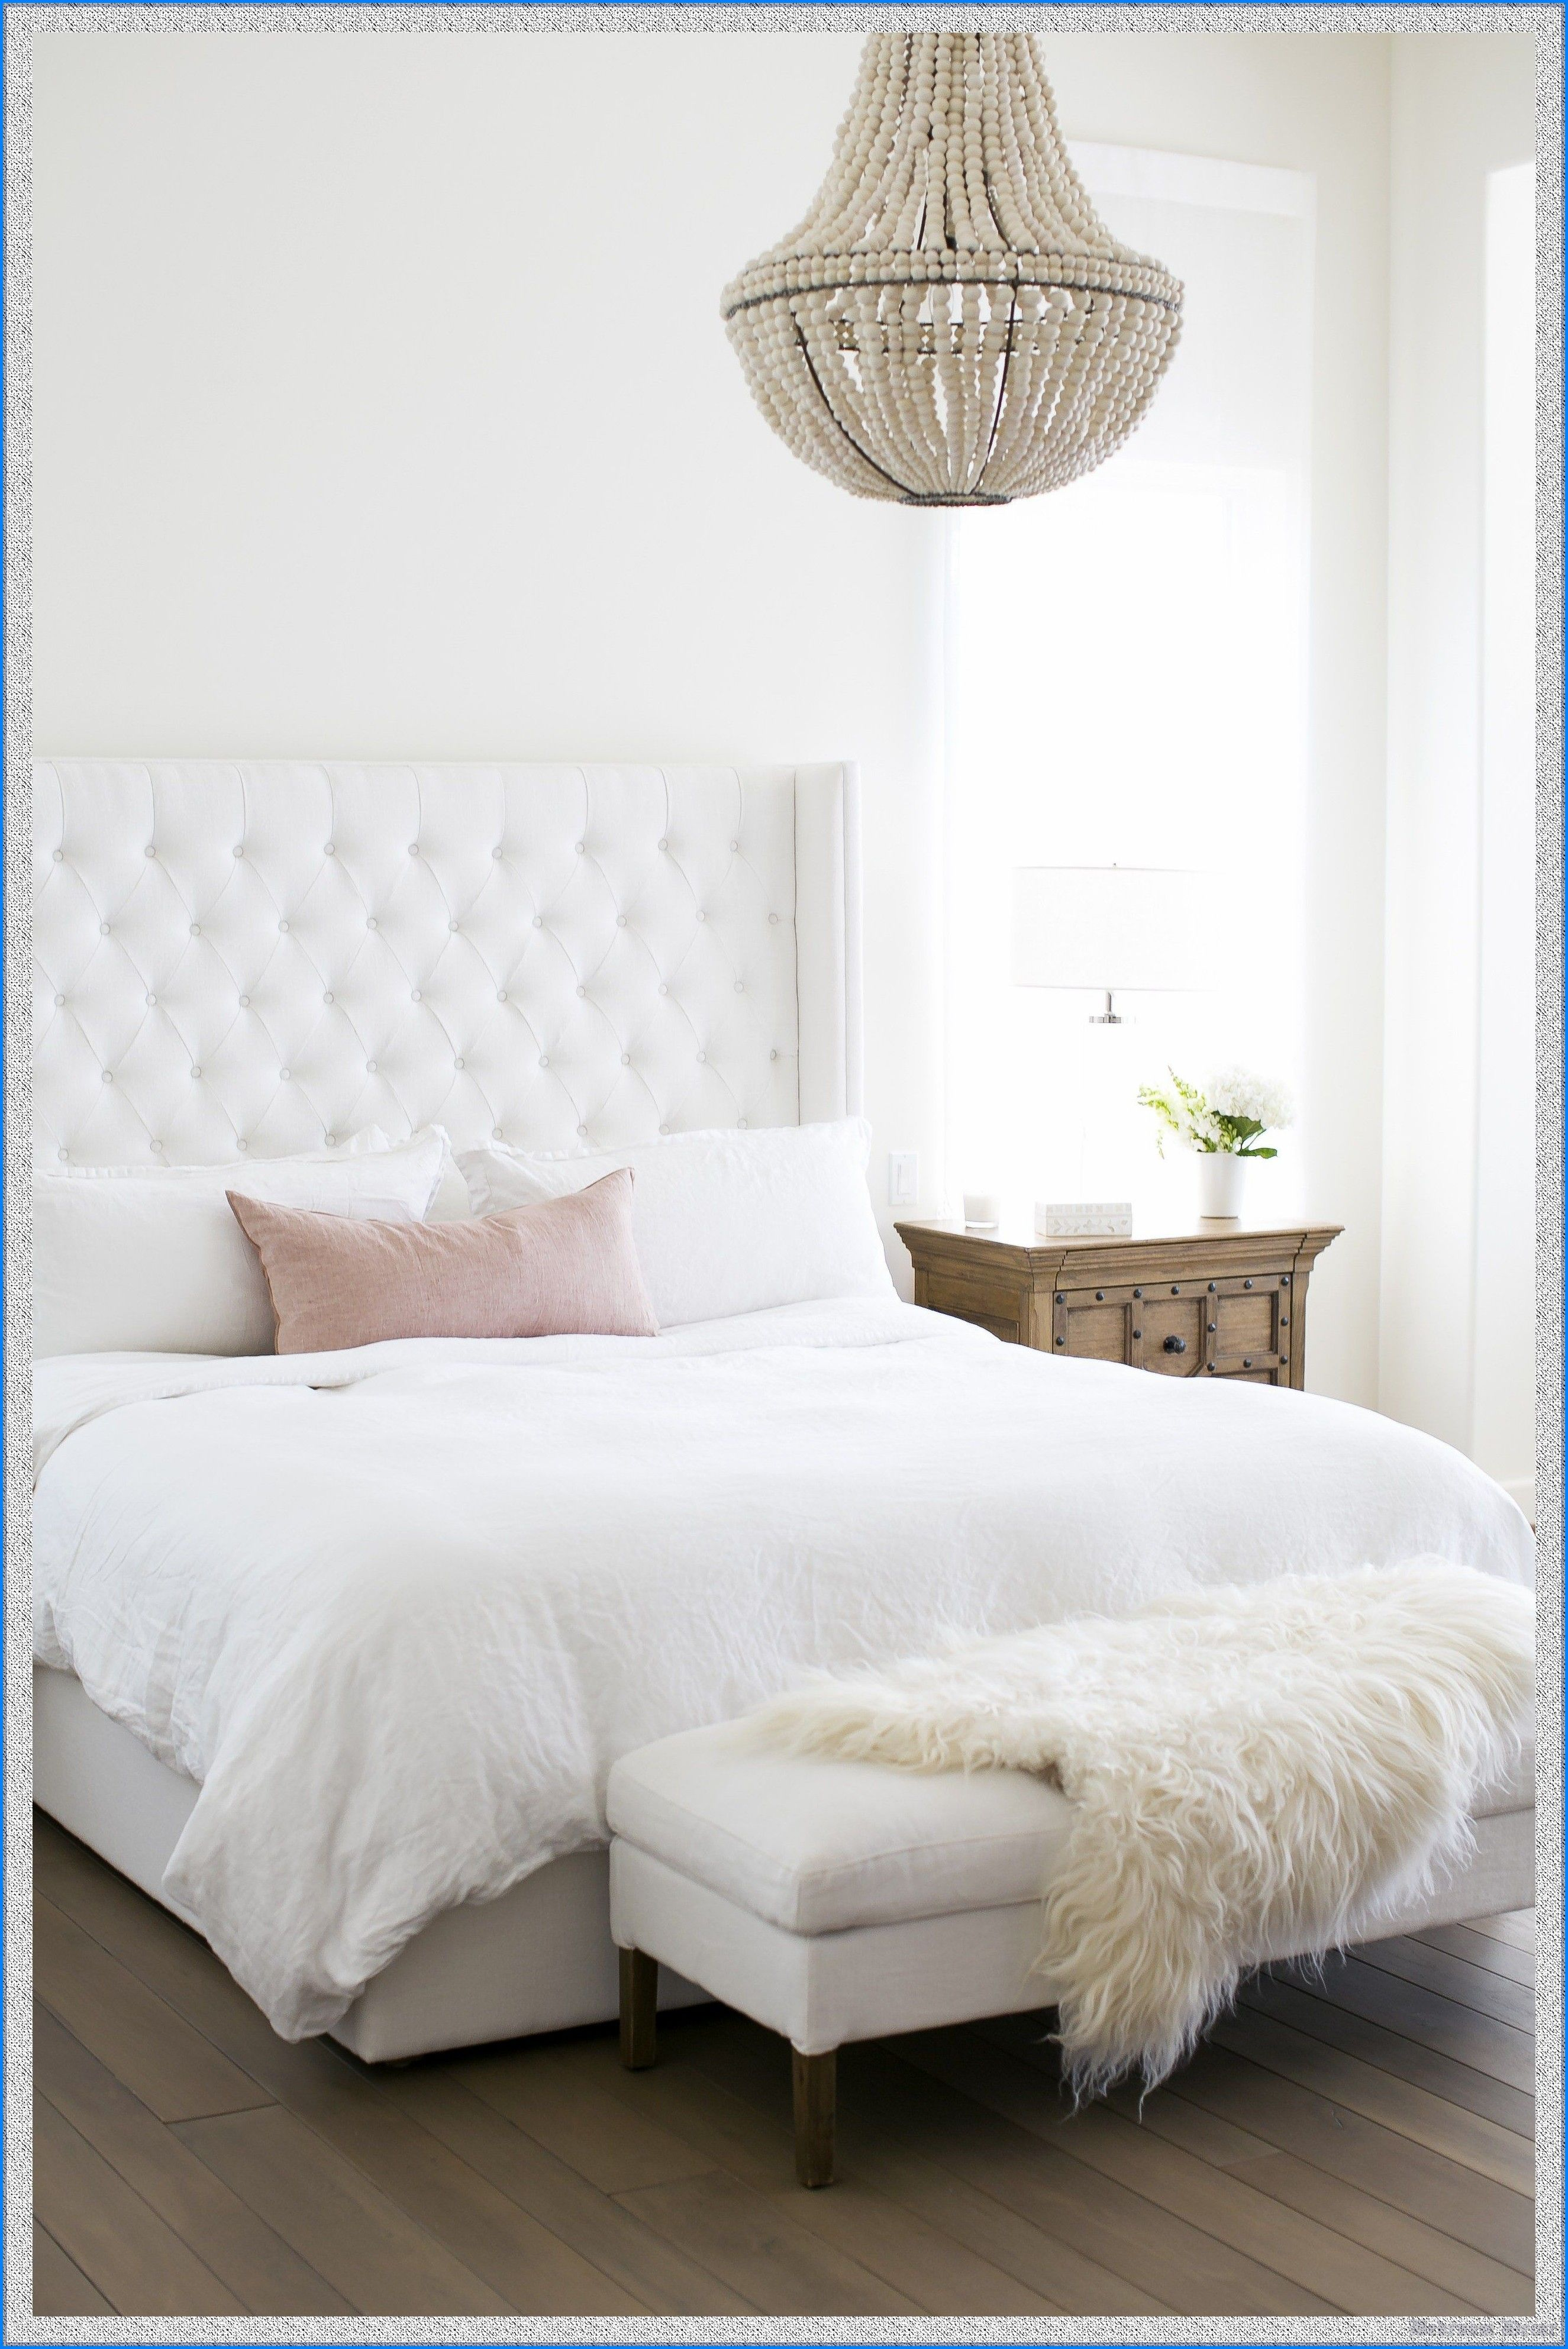 Succeed With Bedroom Decor In 24 Hours